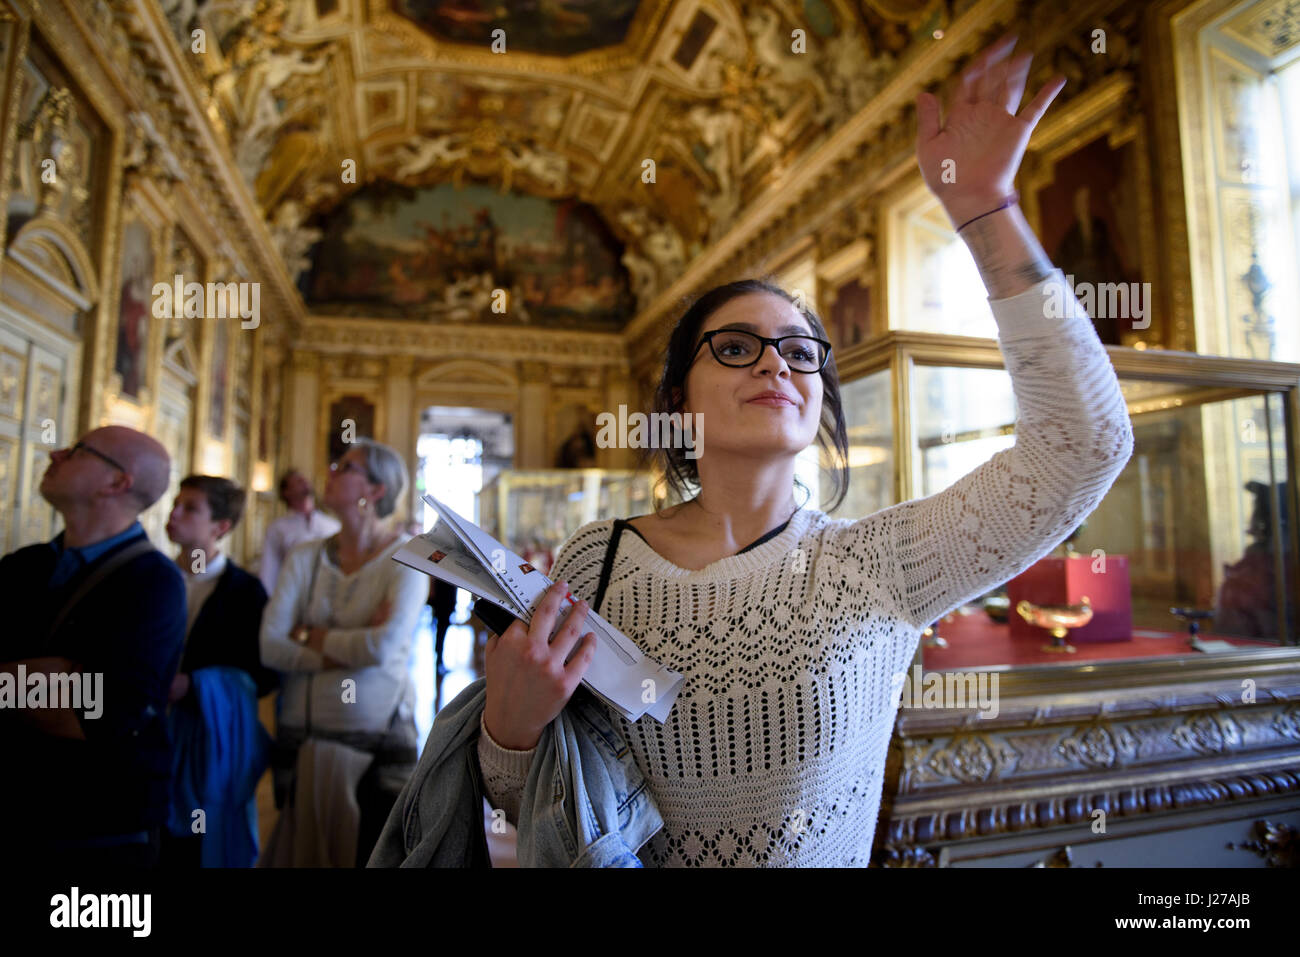 Young woman is waving inside the Apollo Gallery at the Louvre museum in Paris, France. - Stock Image